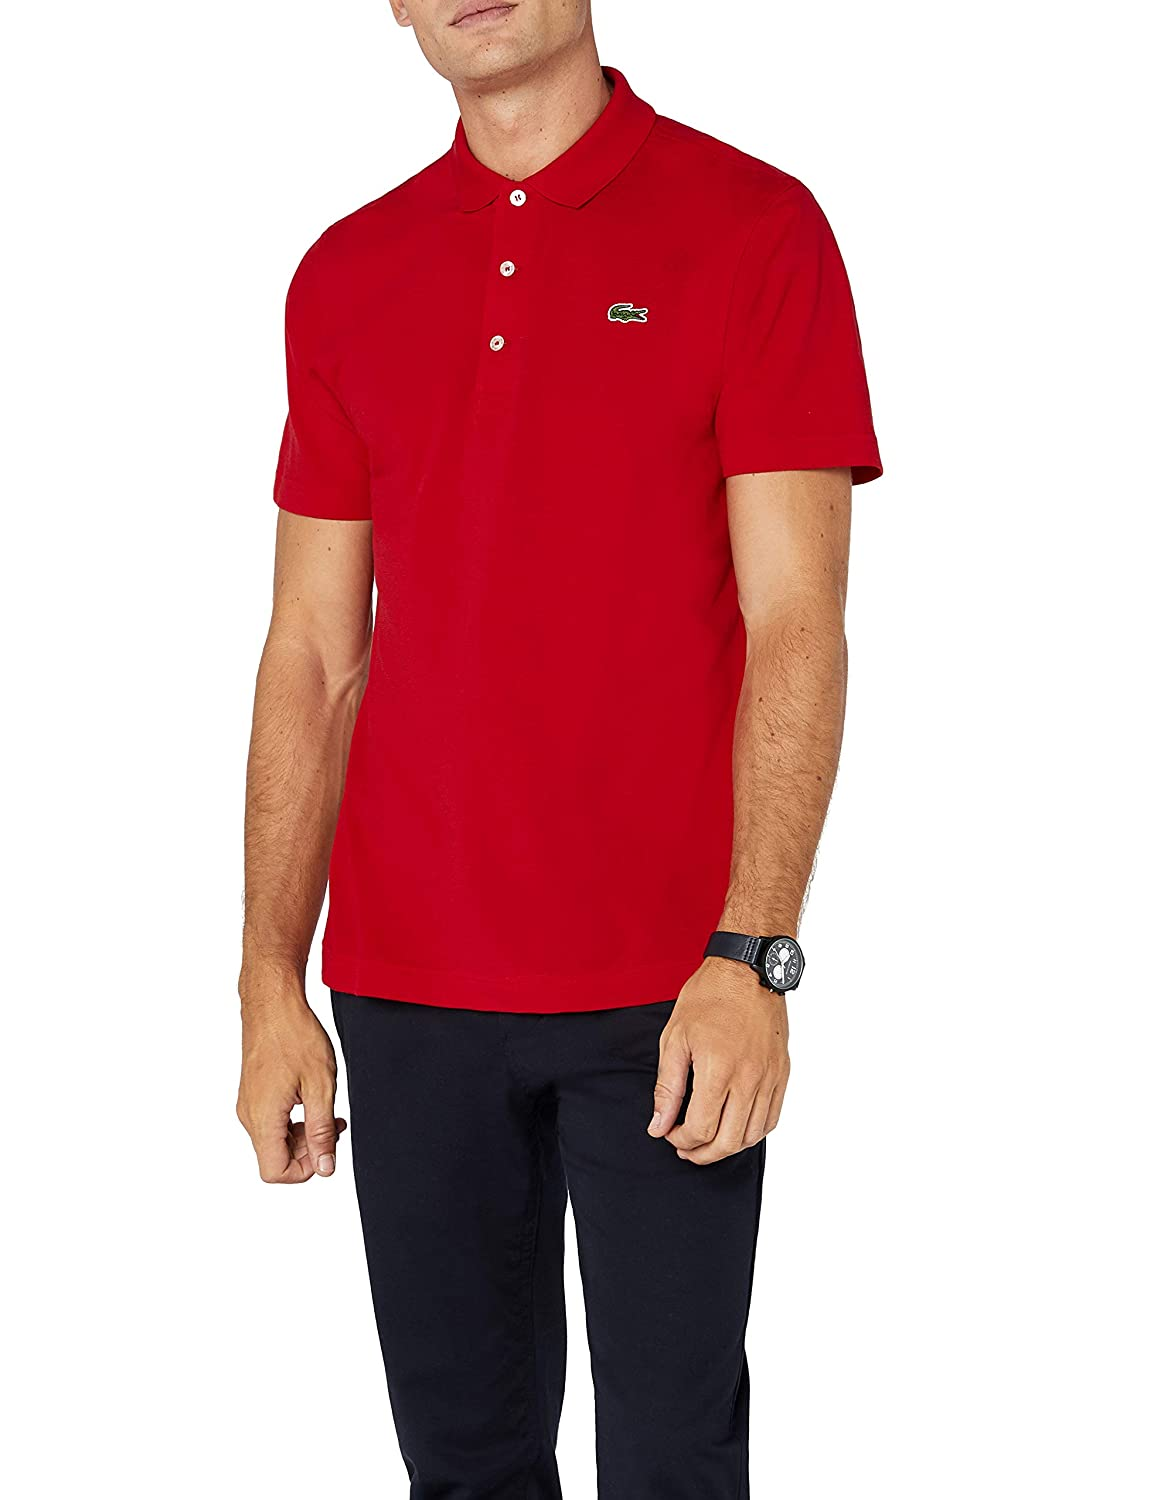 Rouge (Rouge) L Lacoste Polo Homme